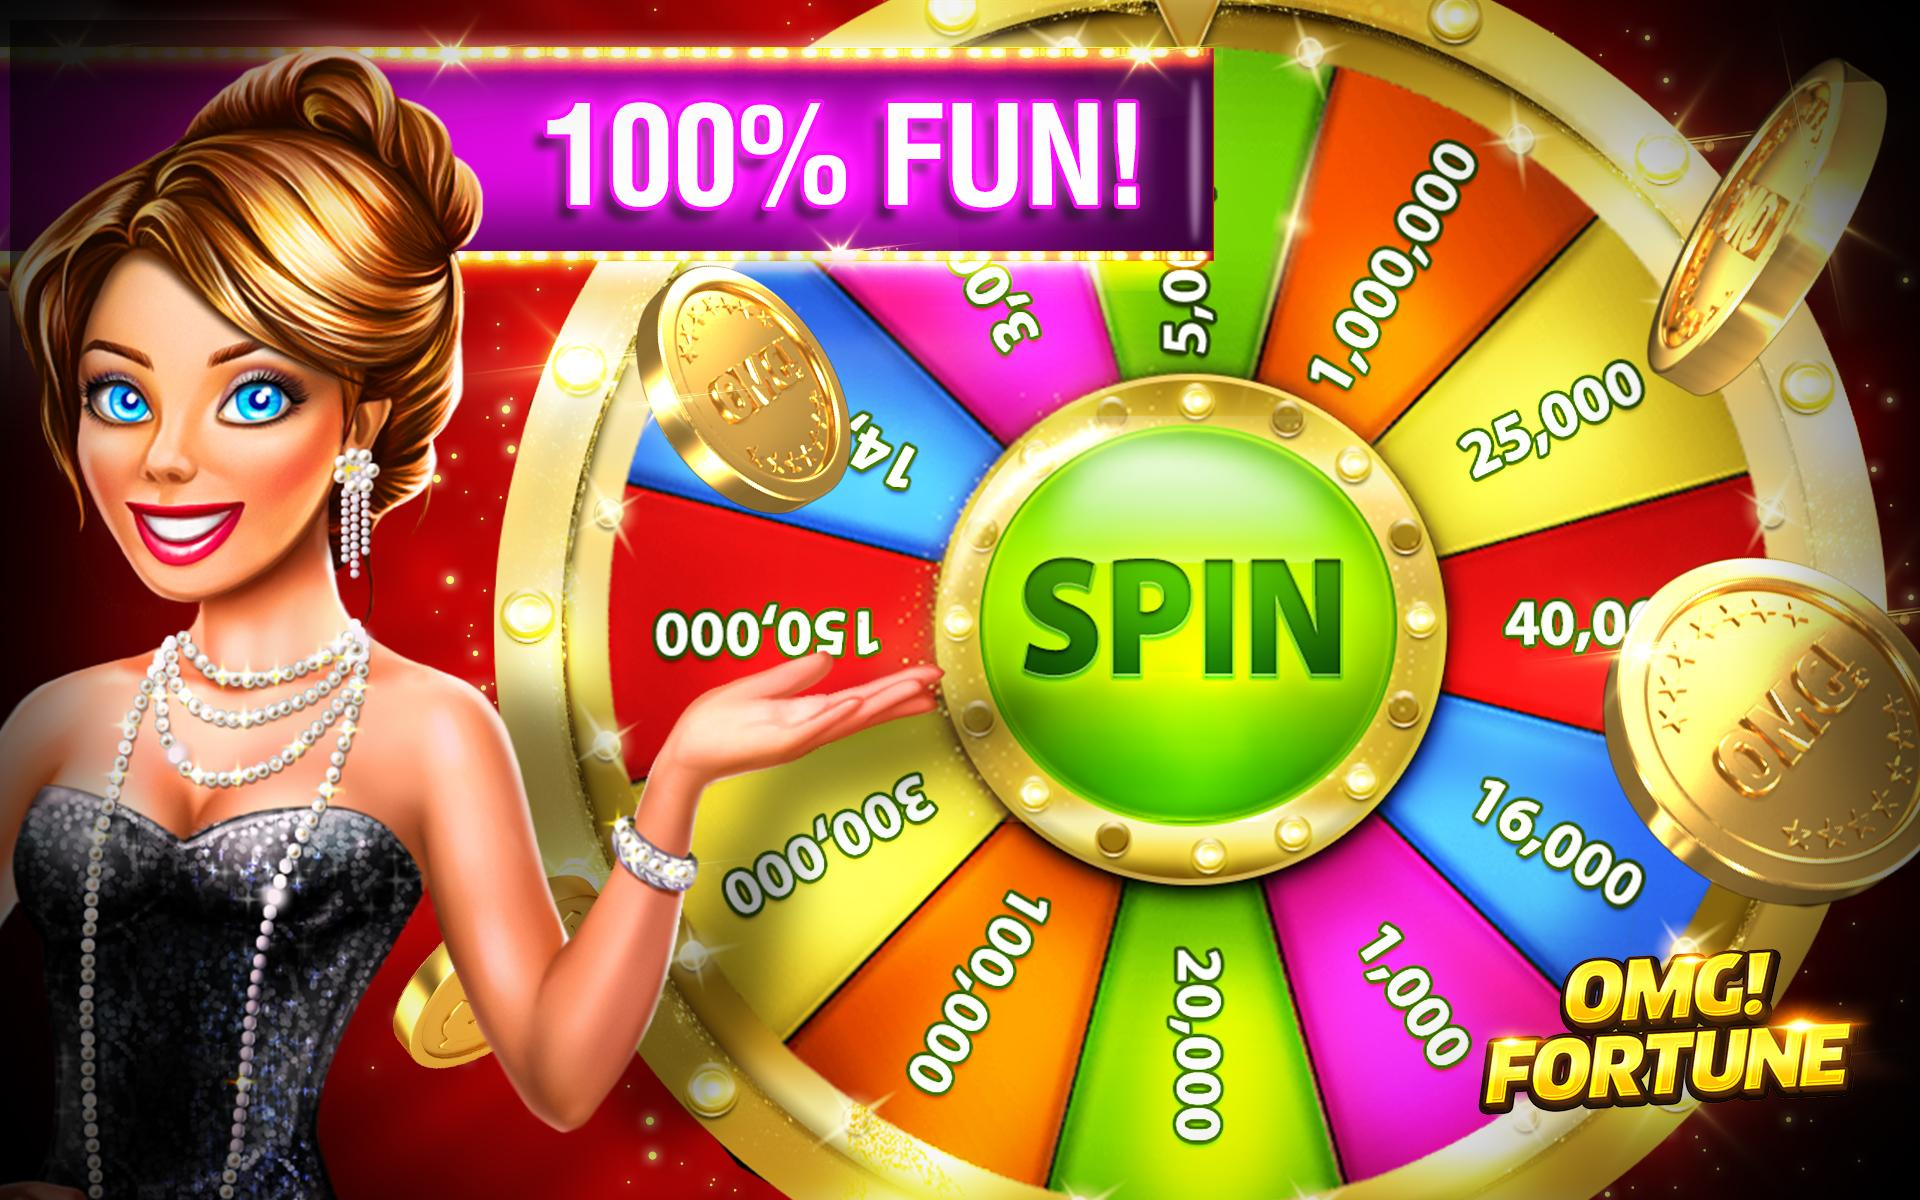 OMG! Fortune Free Slots Casino screenshot #14